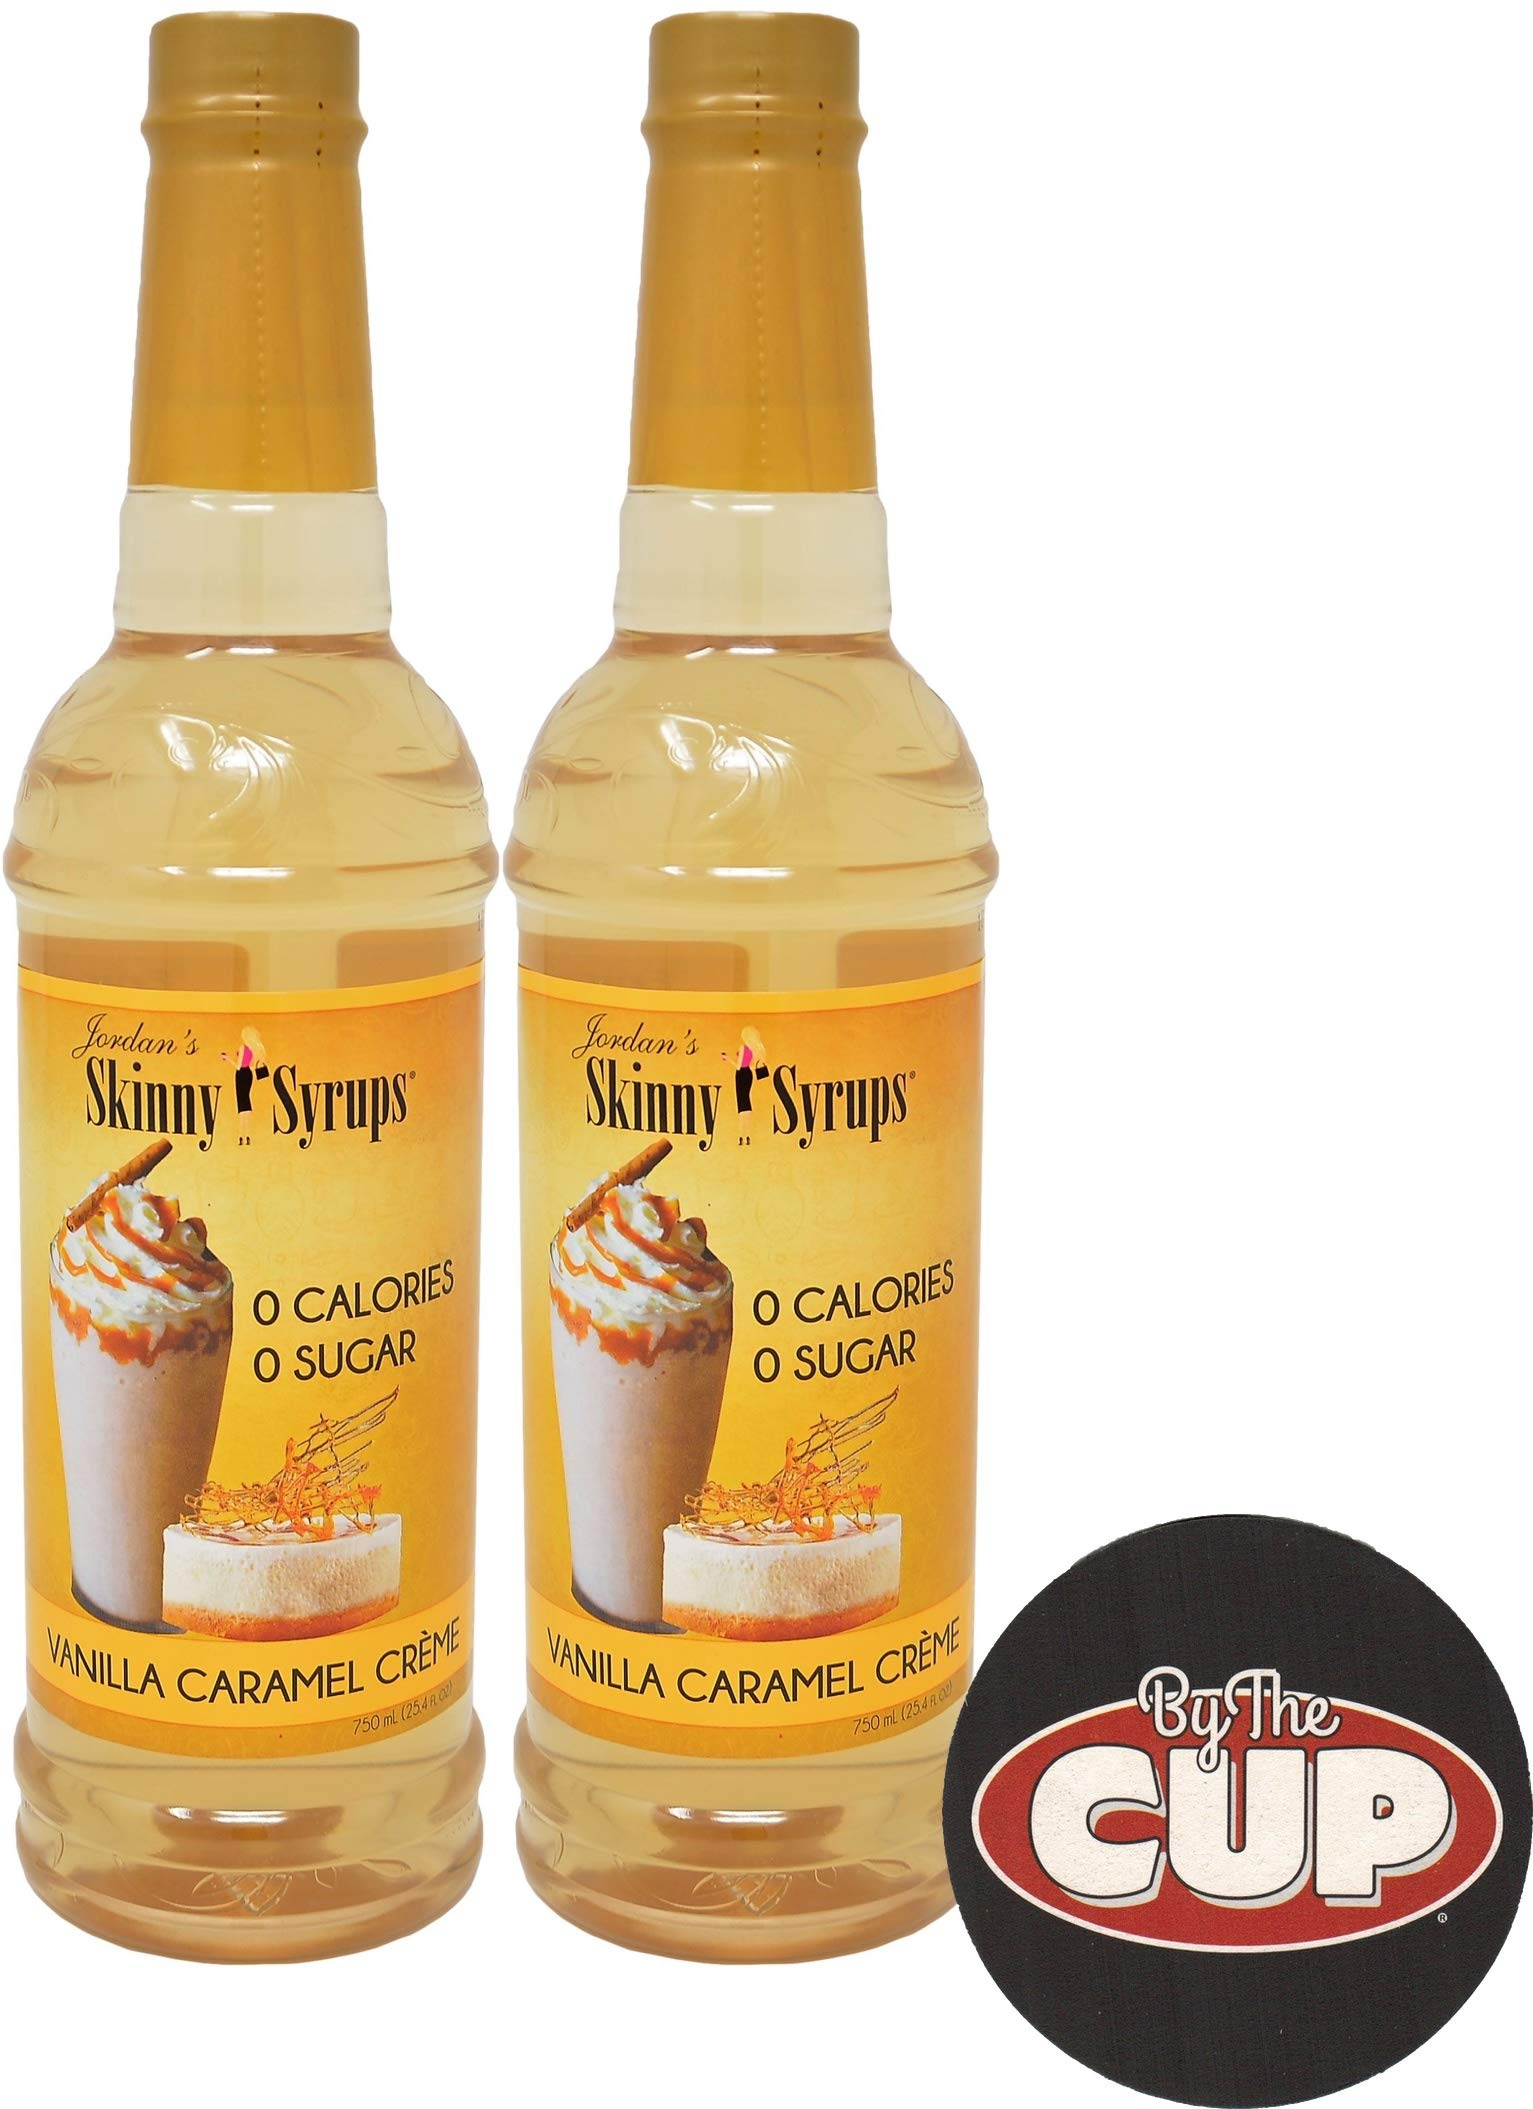 Jordan's Skinny Syrups Sugar Free Vanilla Caramel Creme 750 ml (Pack of 2) with By The Cup Coaster by By The Cup